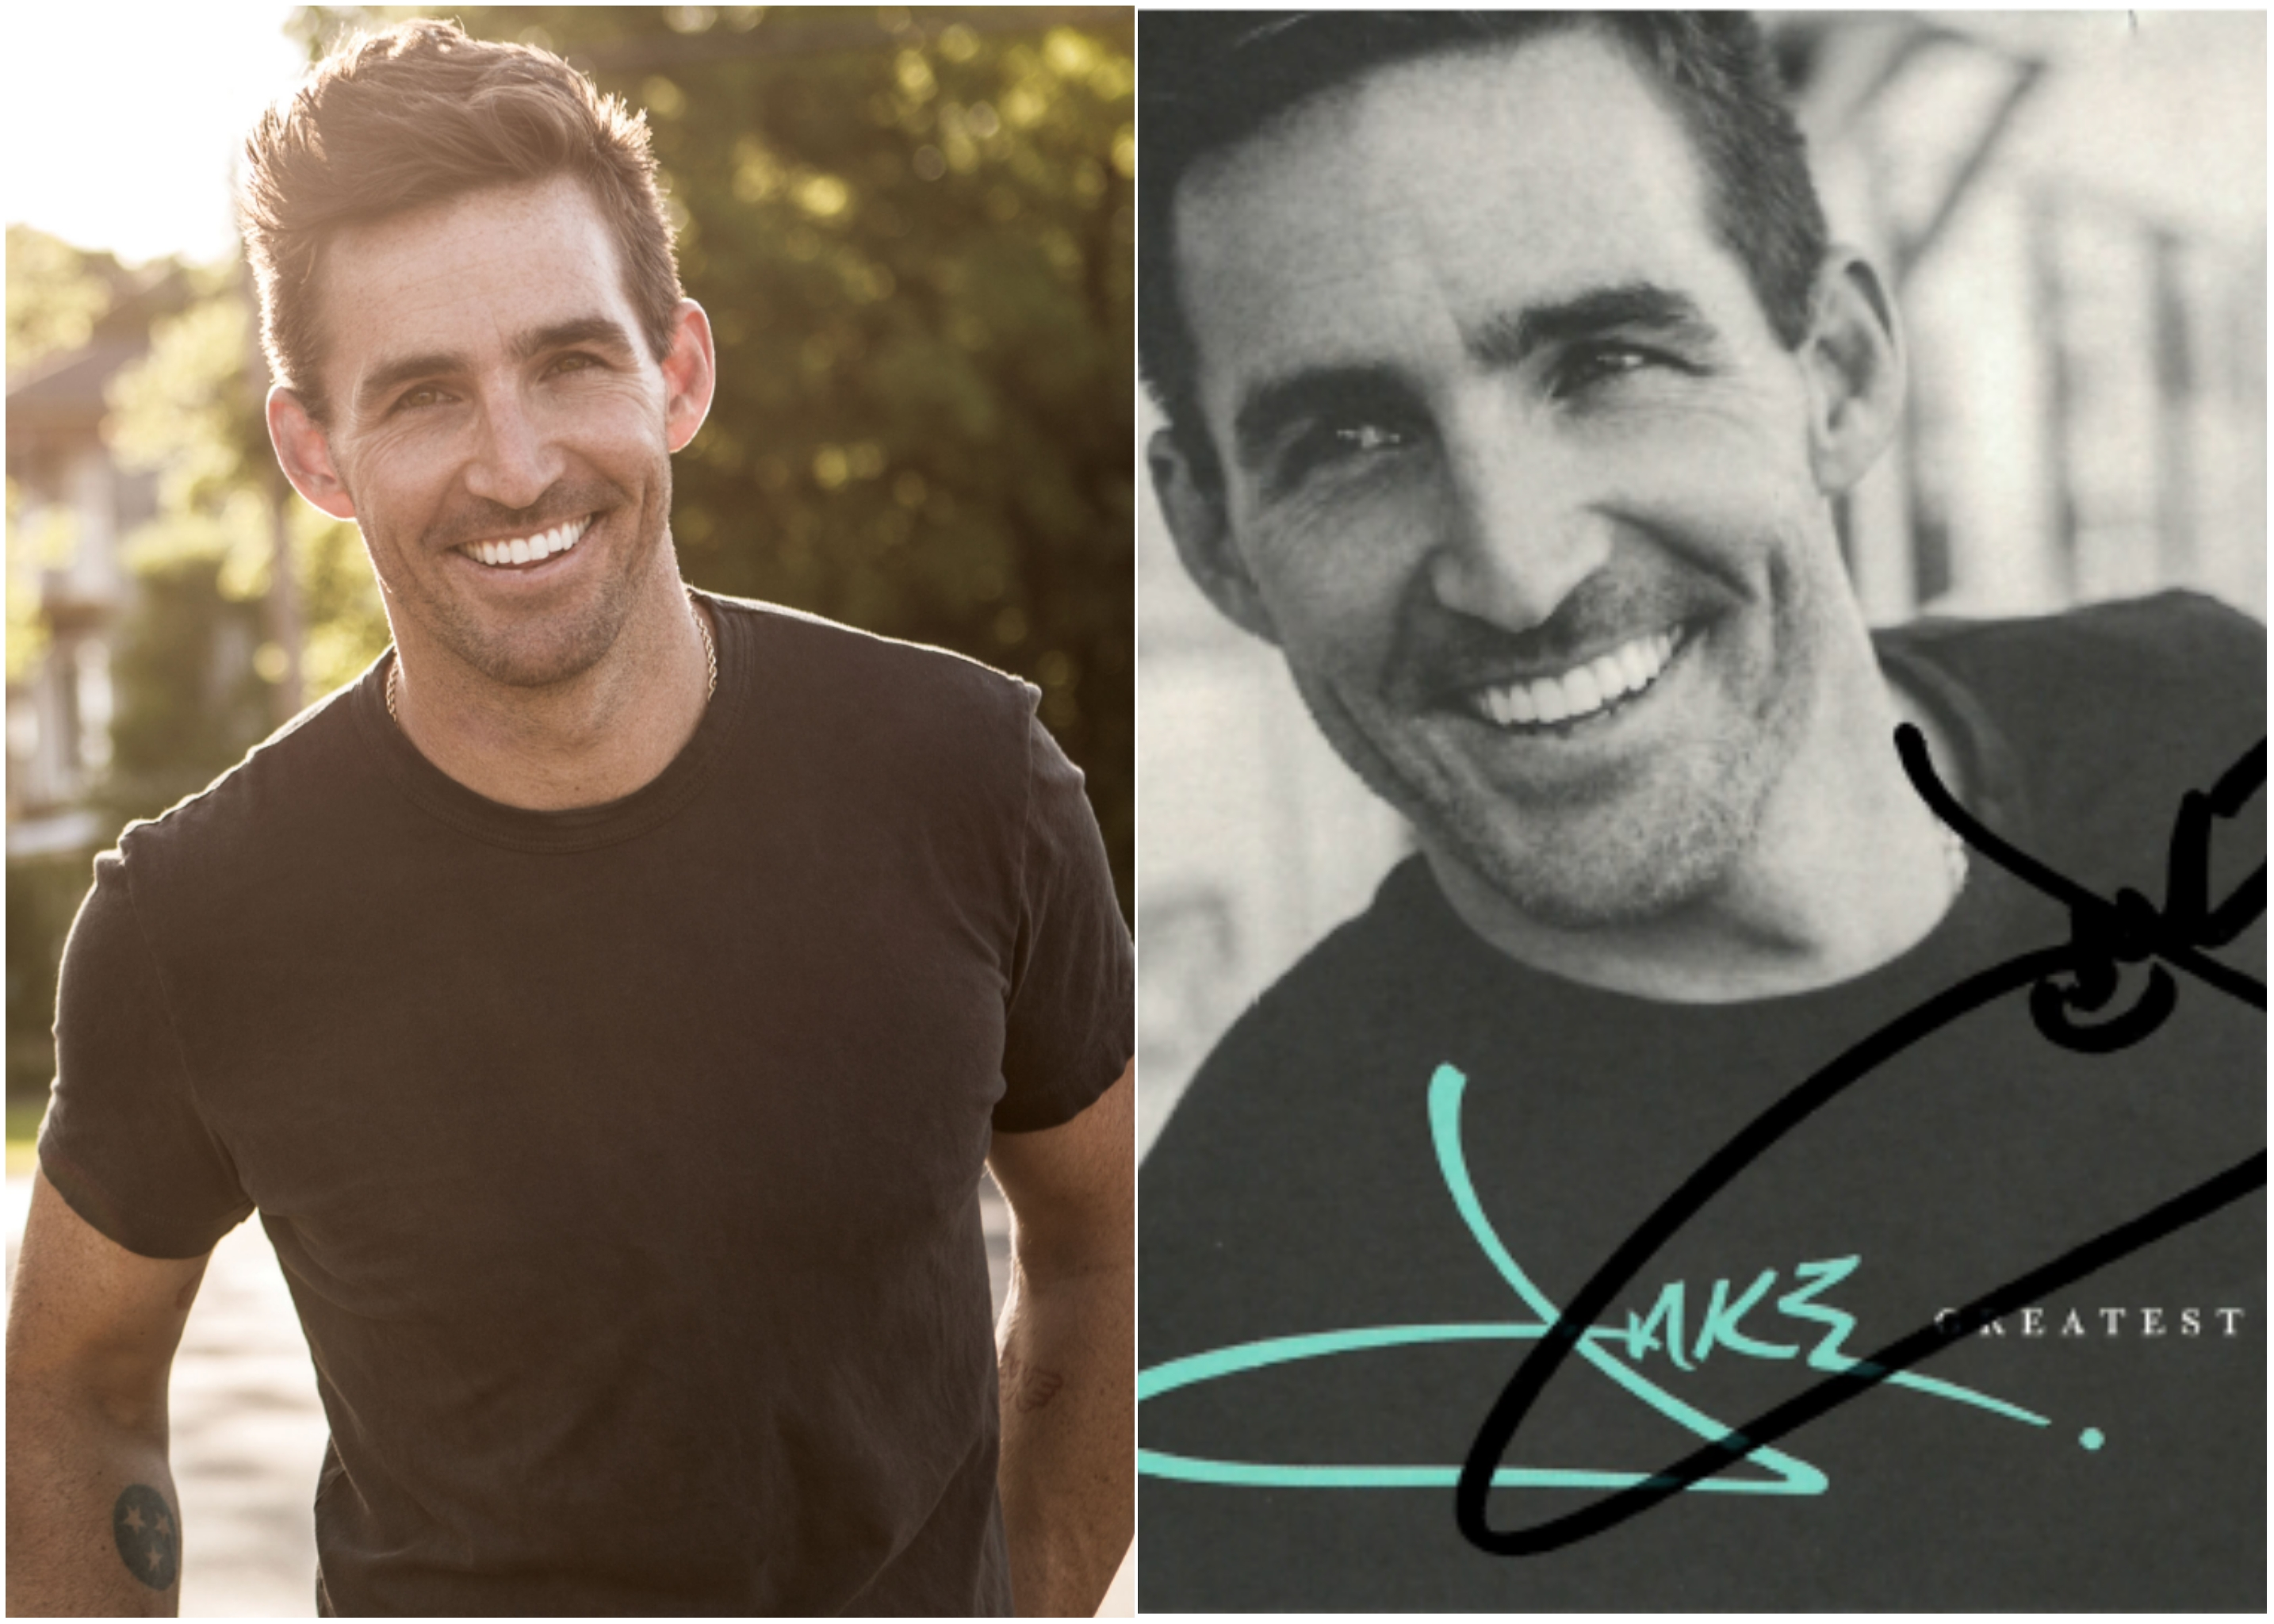 WIN a Signed Copy of Jake Owen's 'Greatest Hits' Album